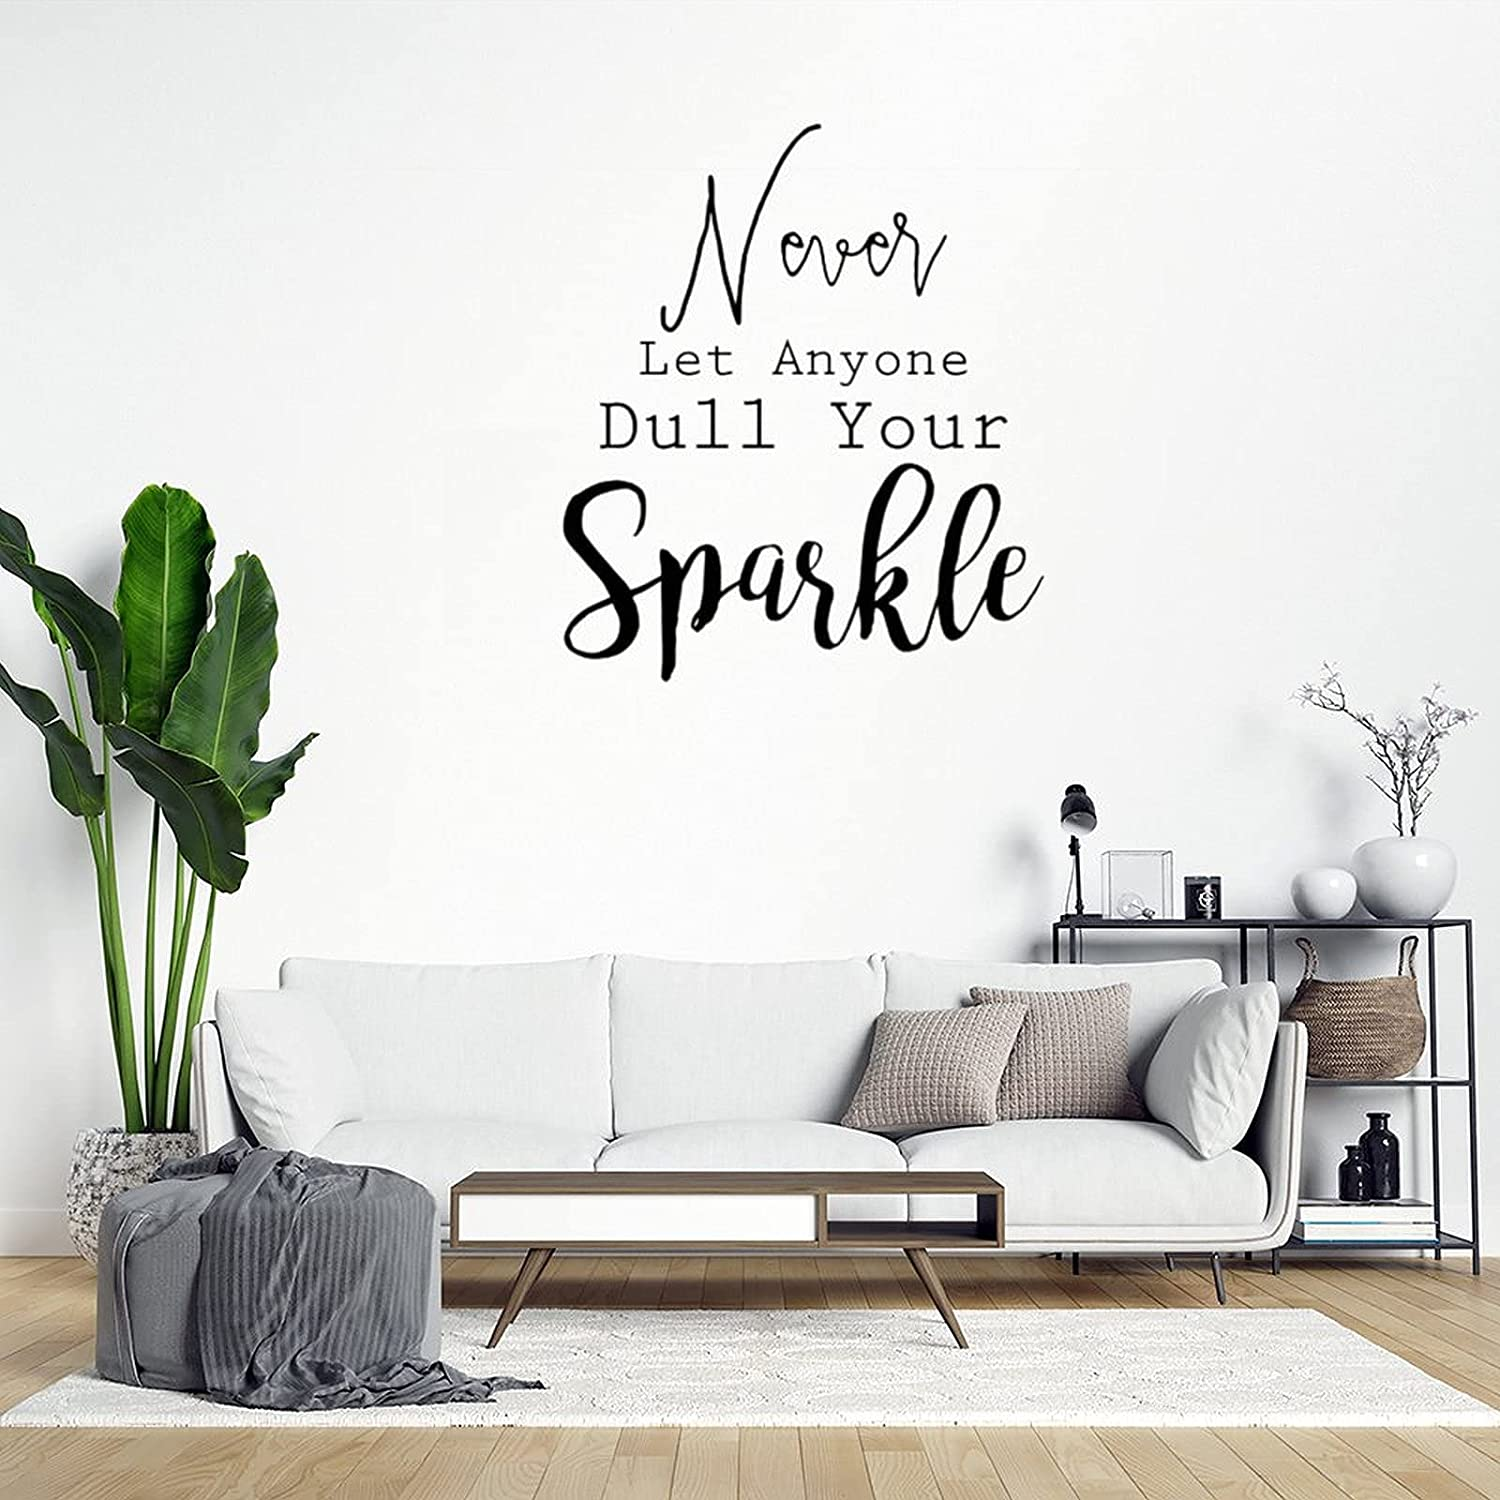 Never Let Anyone Dull Your Sparkle Wall Art Decor Vinyl Art Decal for Living Room Home, Wall Decals Stickers 15 Inch